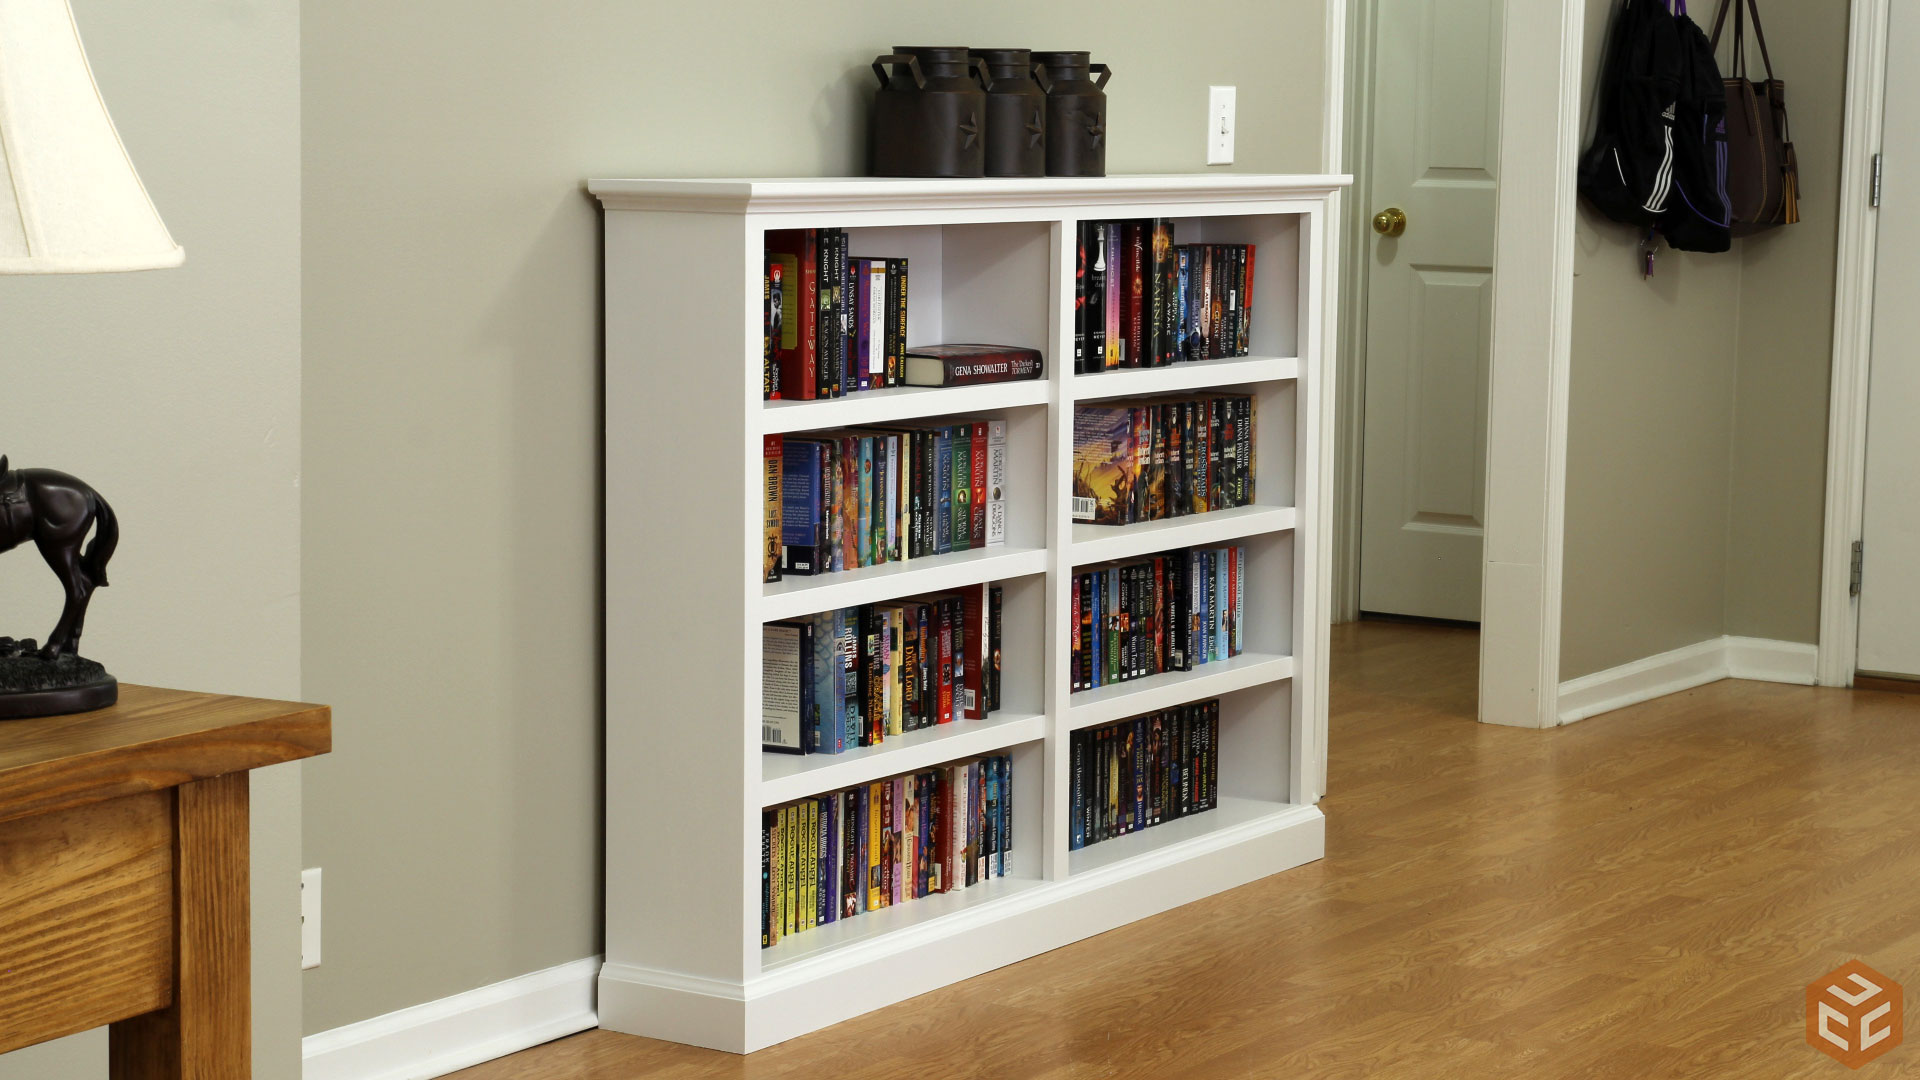 How To Build A Bookcase Jays Custom Creations. Full resolution‎  portrait, nominally Width 1920 Height 1080 pixels, portrait with #6F4625.